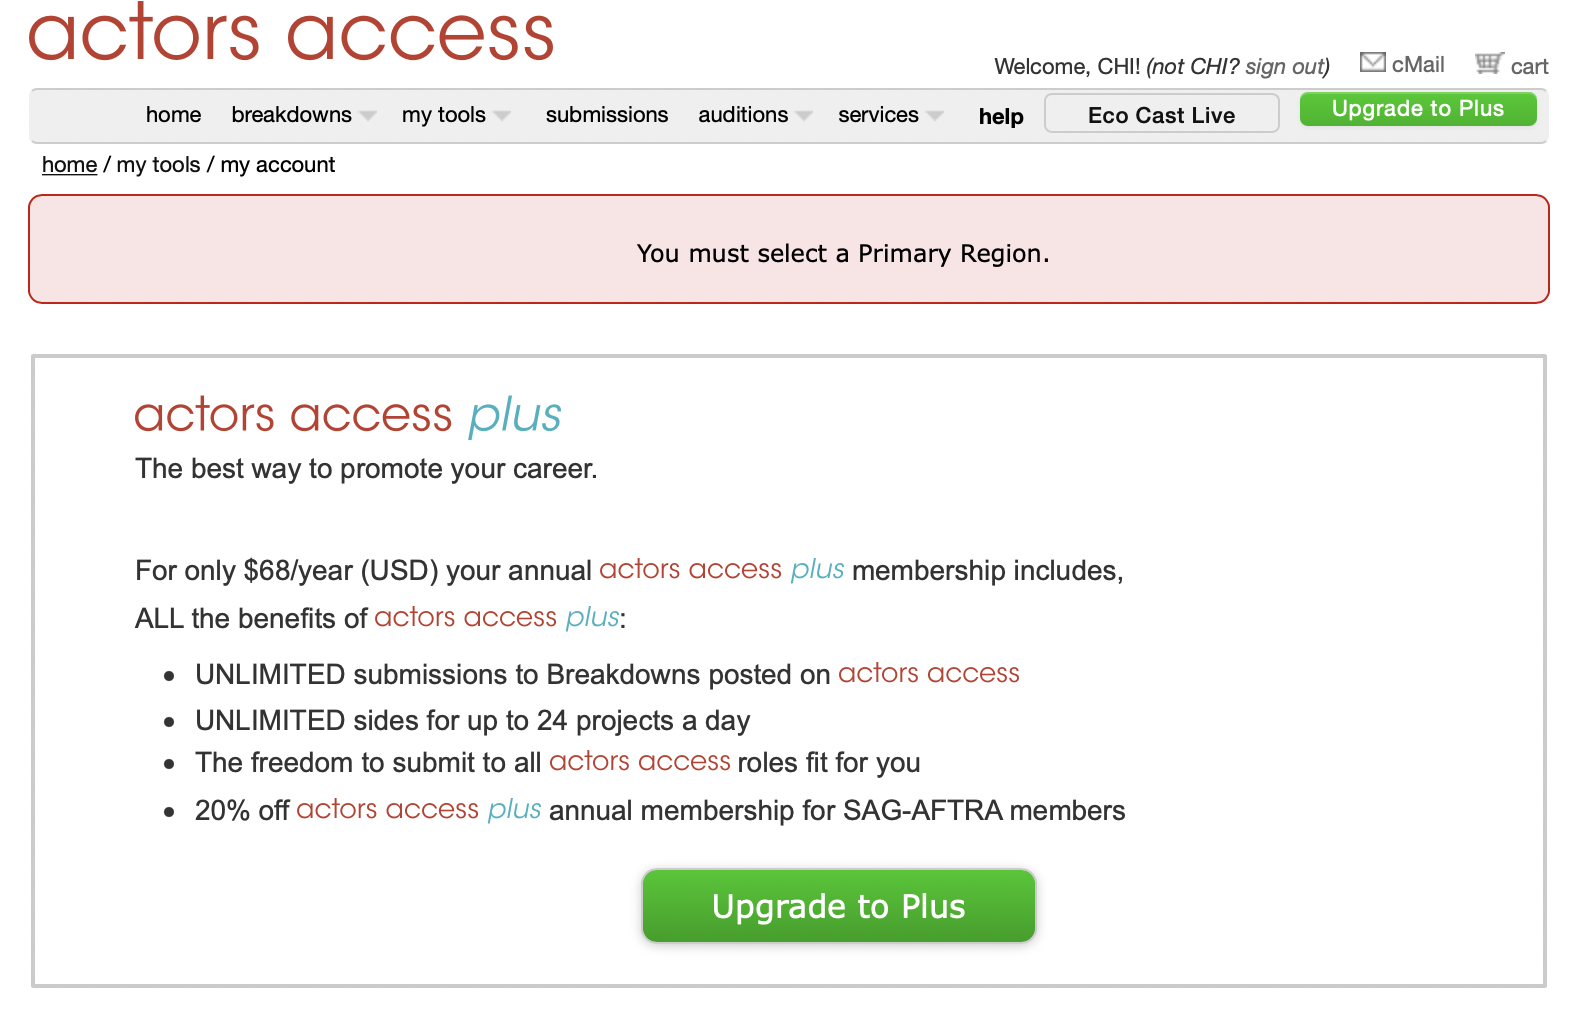 Screenshot of Actors Access account profile showing the benefits of upgrading to Actors Access Plus